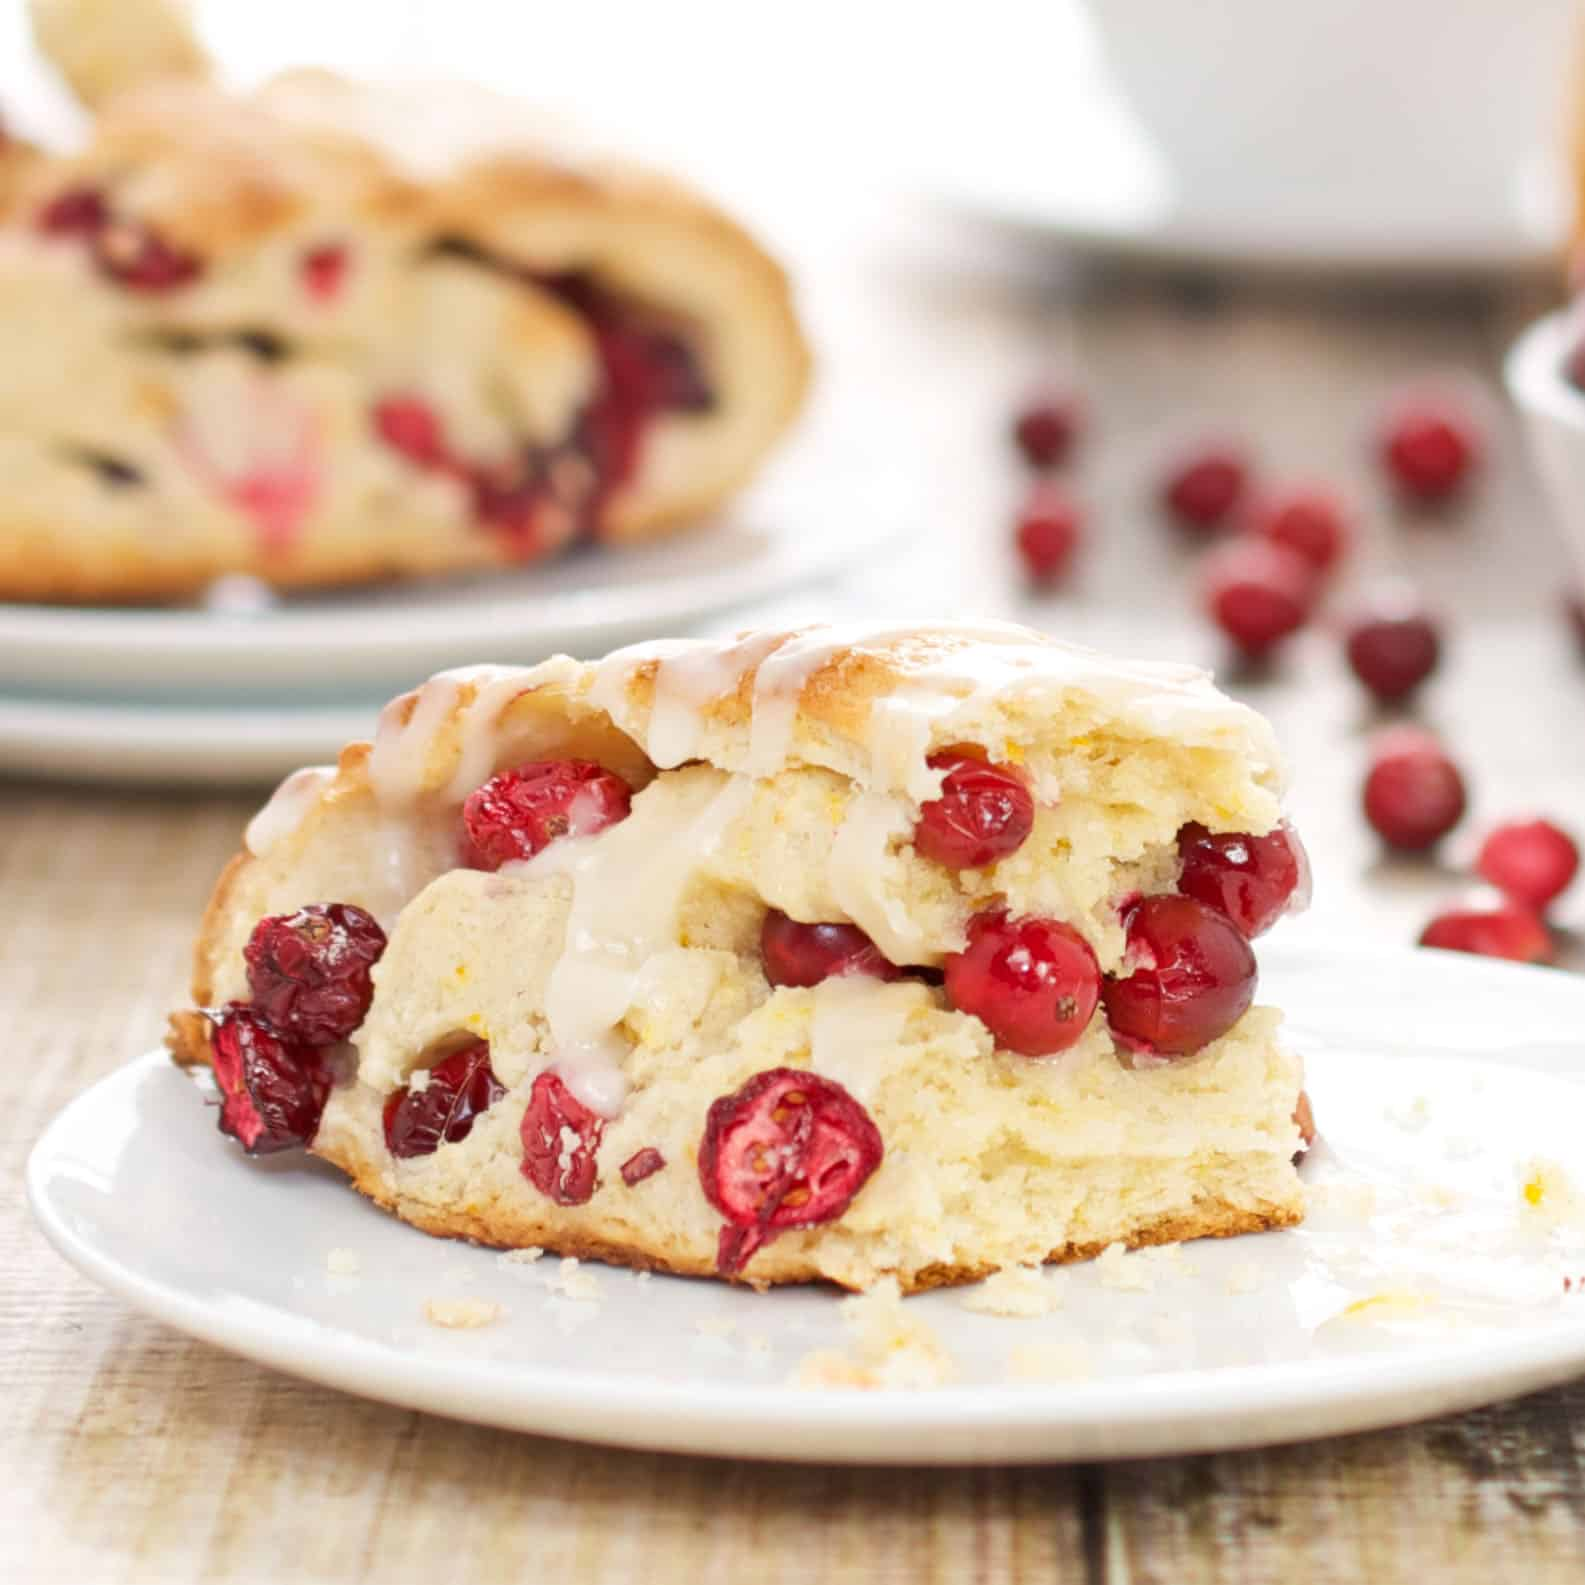 plate with cranberry scone and fresh cranberries